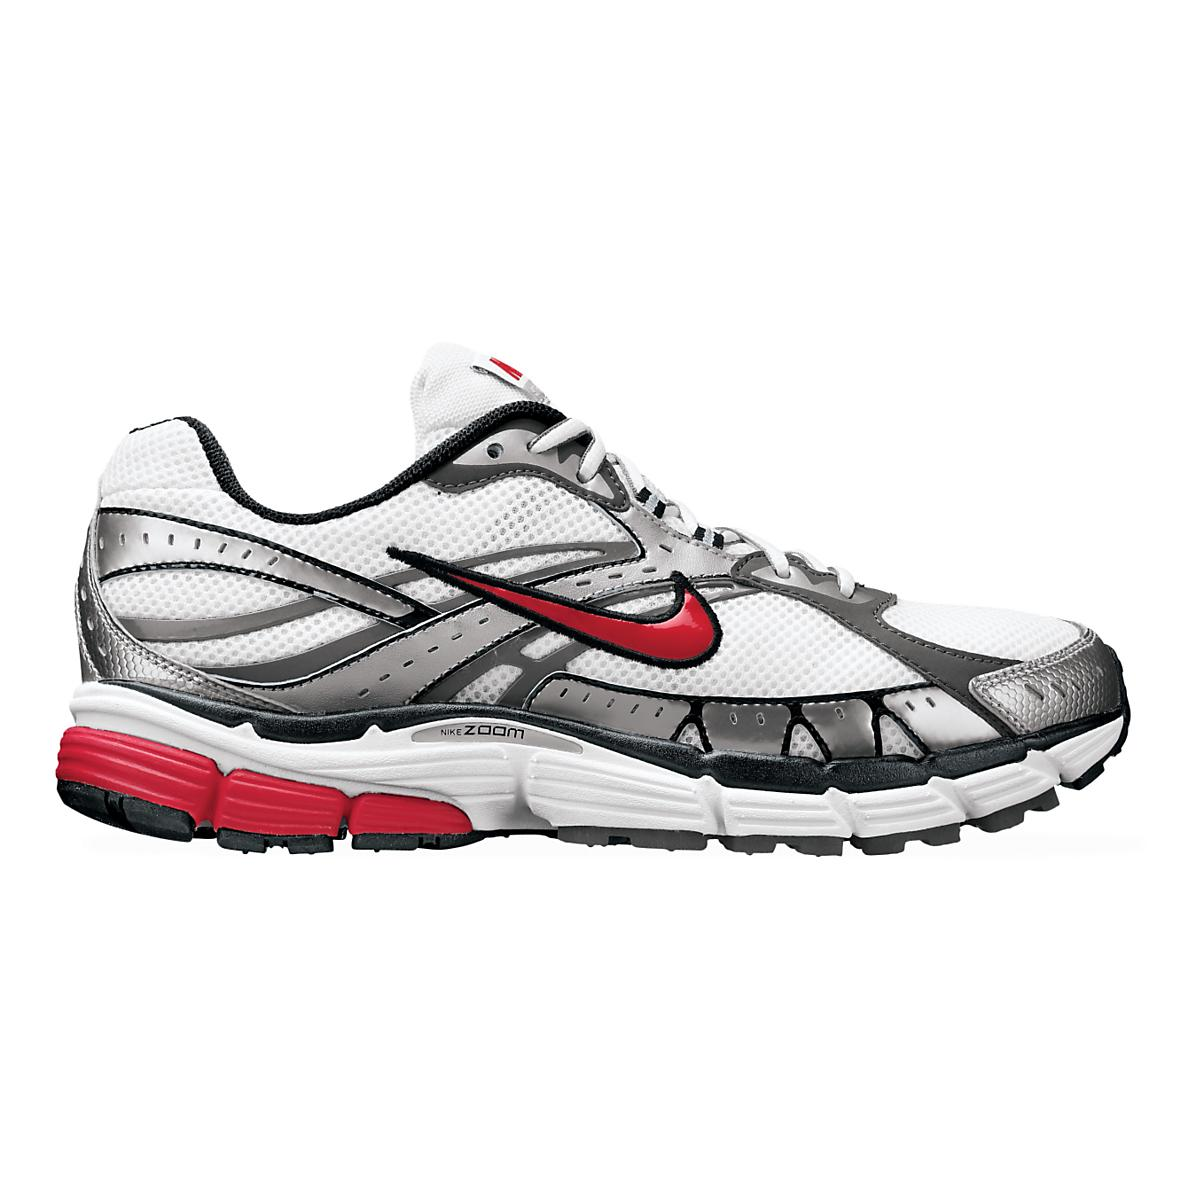 2825bce4e25f Mens Nike Zoom Structure Triax +12 Running Shoe at Road Runner Sports